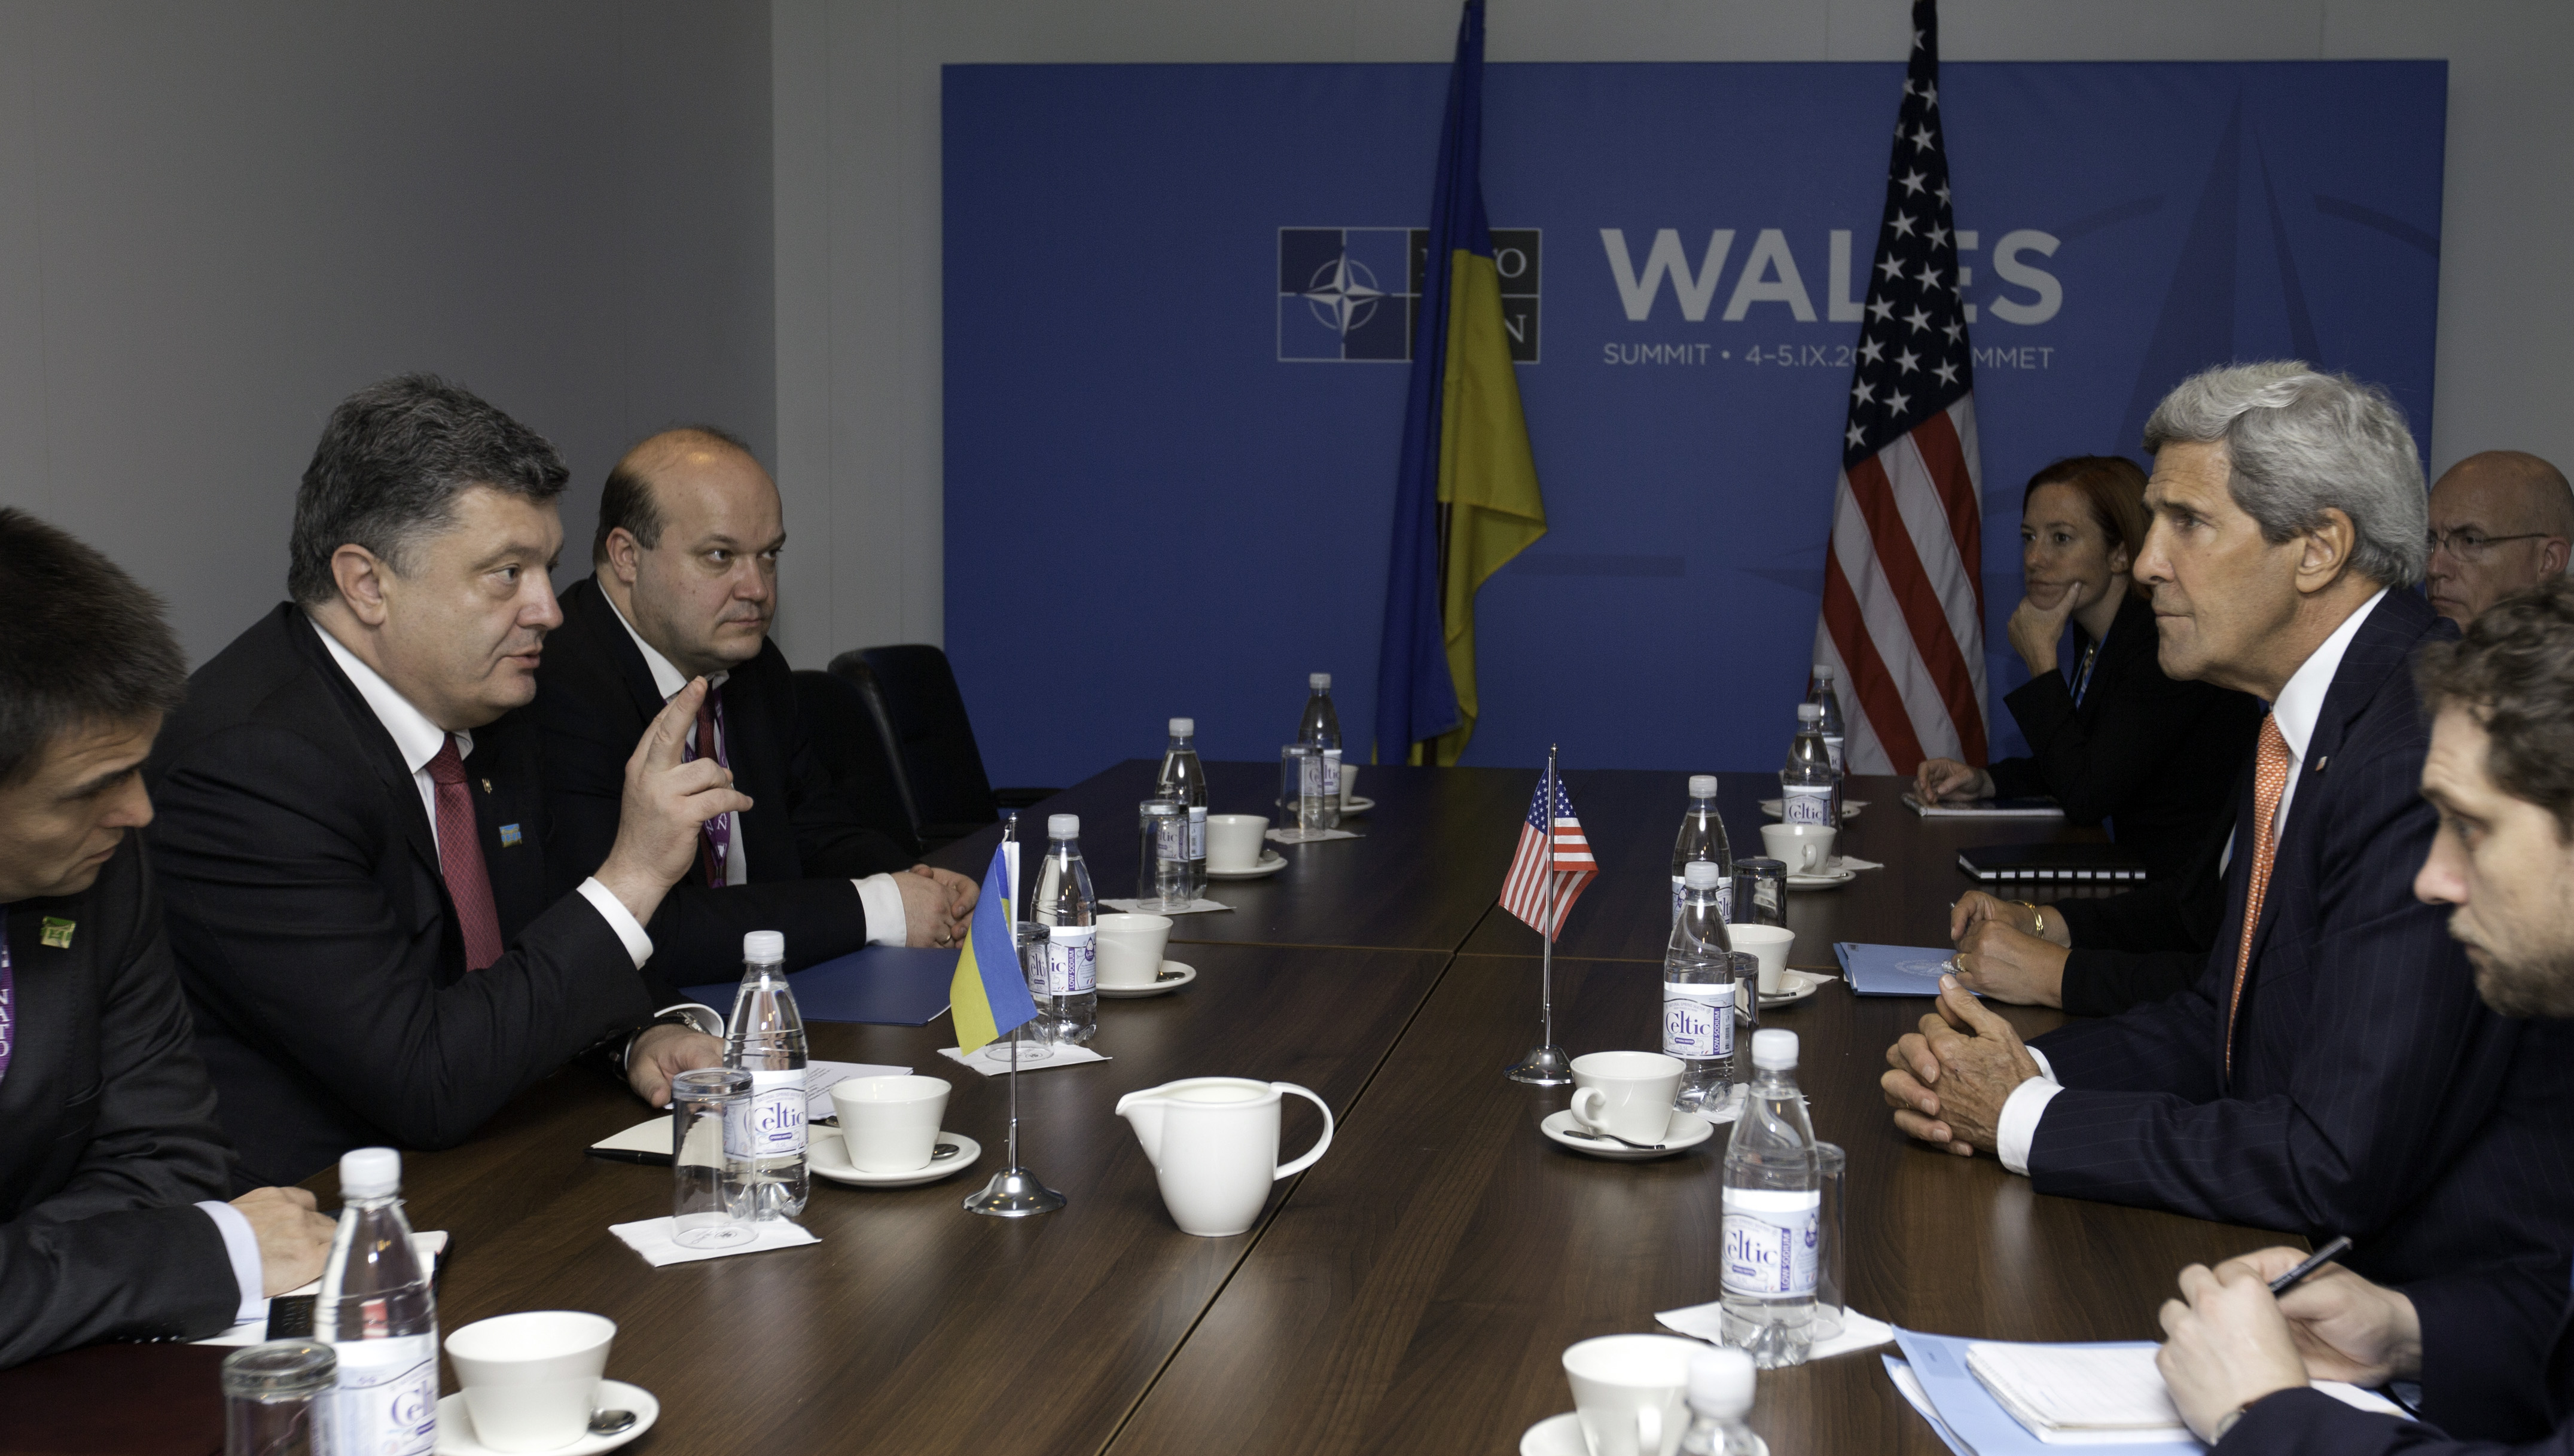 U.S. Secretary of State John Kerry, third right, meets with Ukrainian President Petro Poroshenko, second left, on the sidelines of the NATO summit at the Celtic Manor Resort in Newport, Wales on Thursday, Sept. 4, 2014.